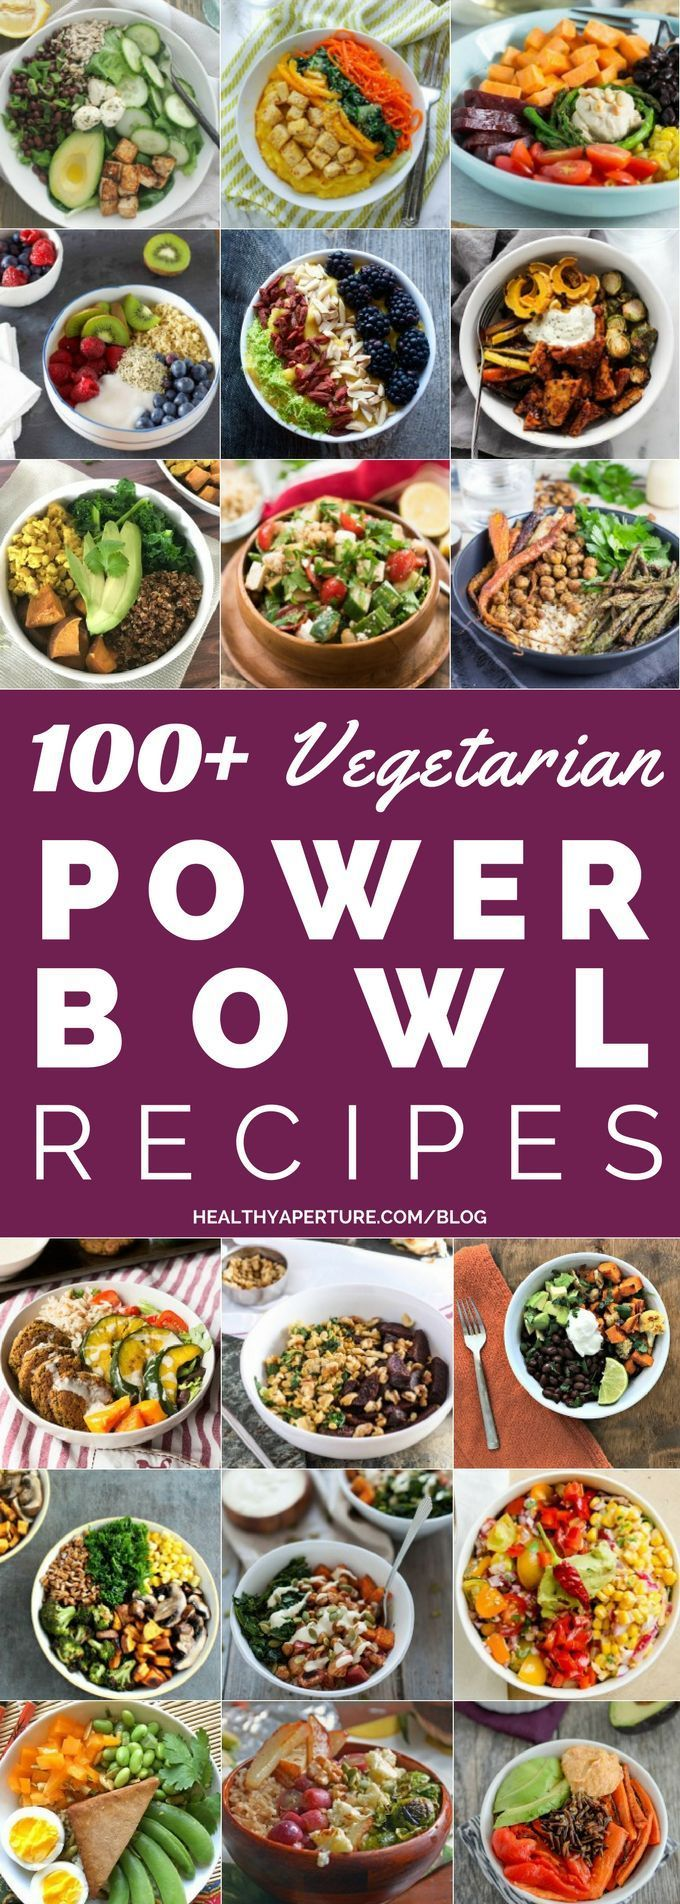 These Healthy Vegetarian Power Bowl recipes are packed with protein and make a quick, easy meatless breakfast, lunch or dinner!